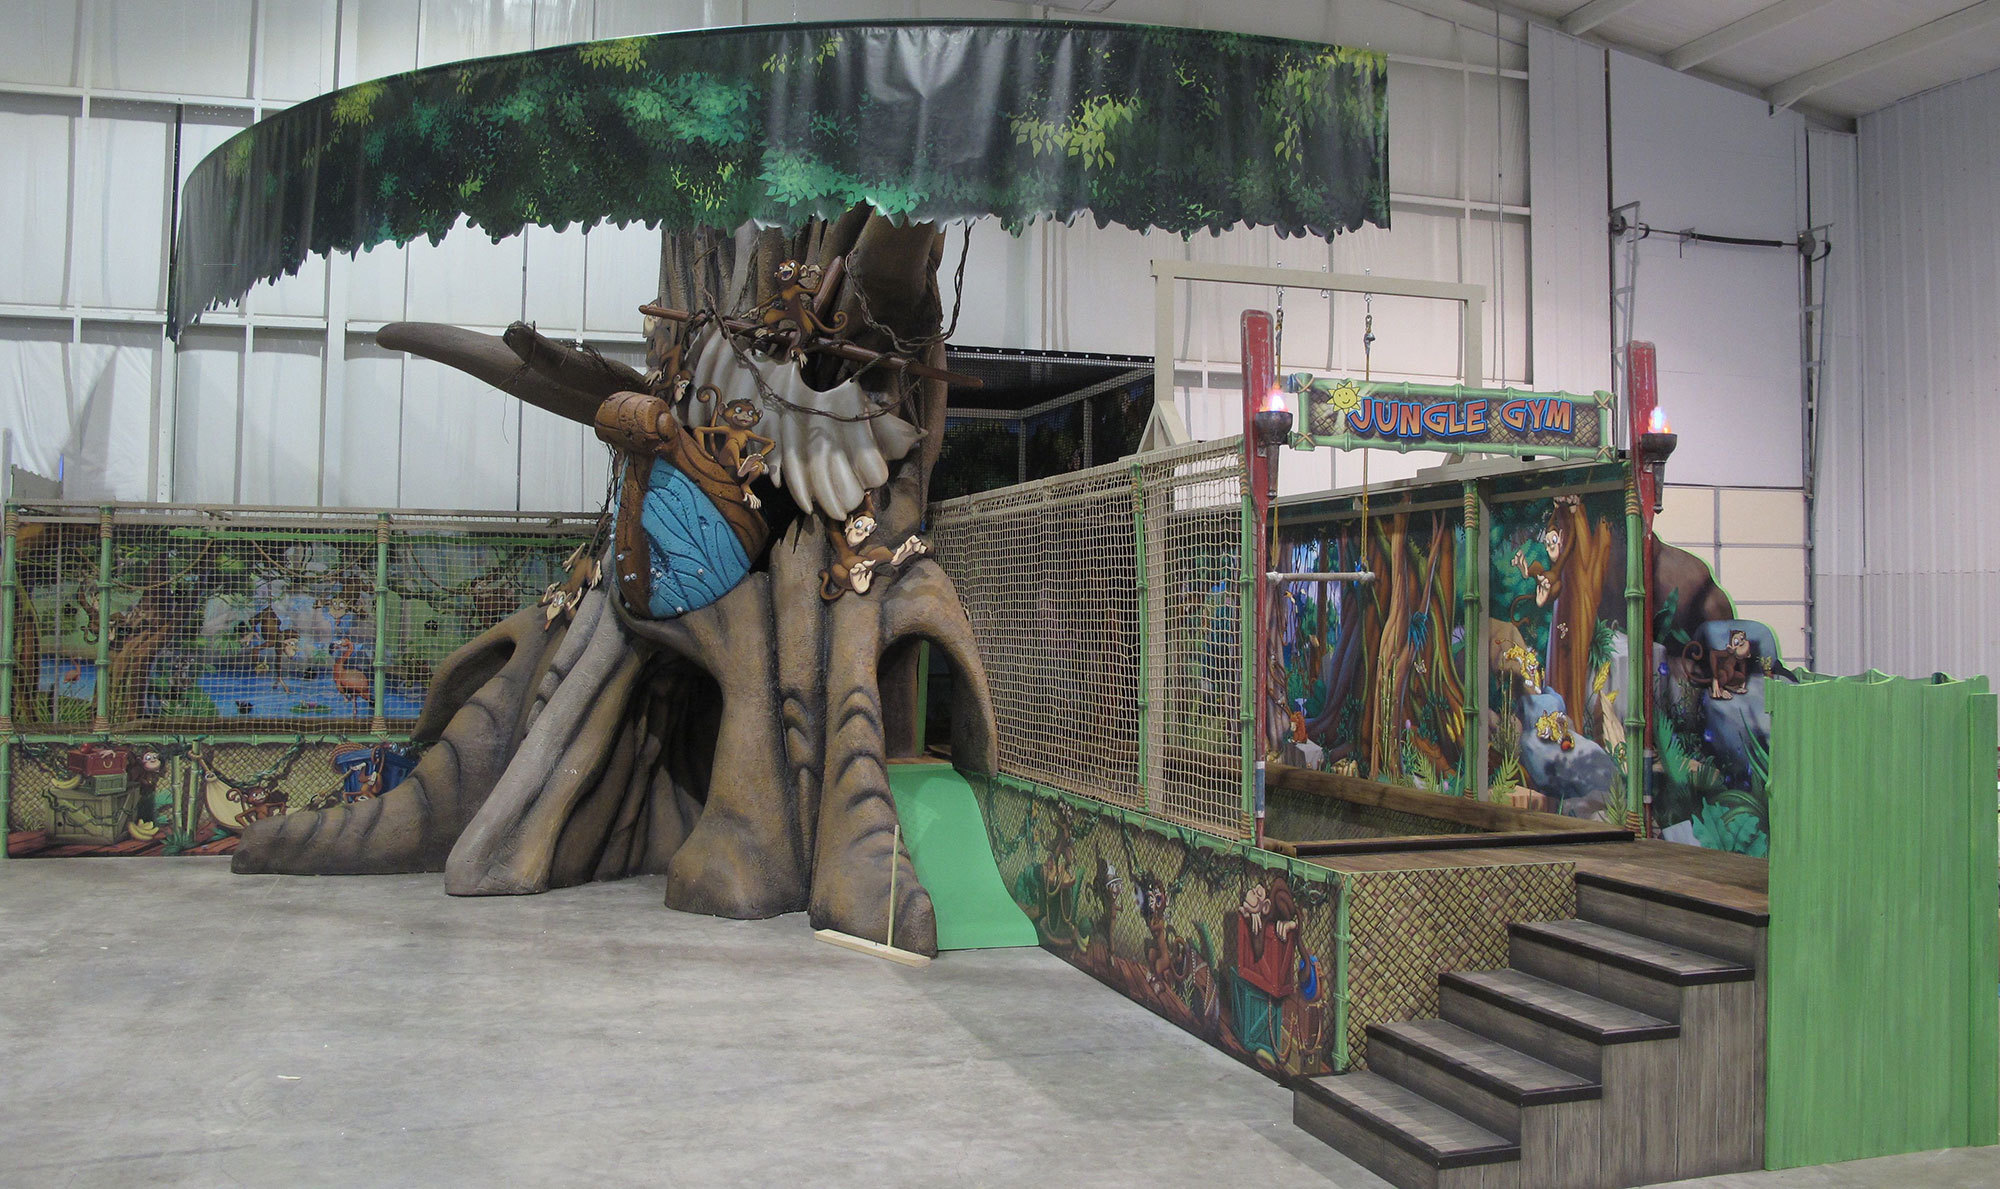 3D Tree and Jungle Themed Play Space